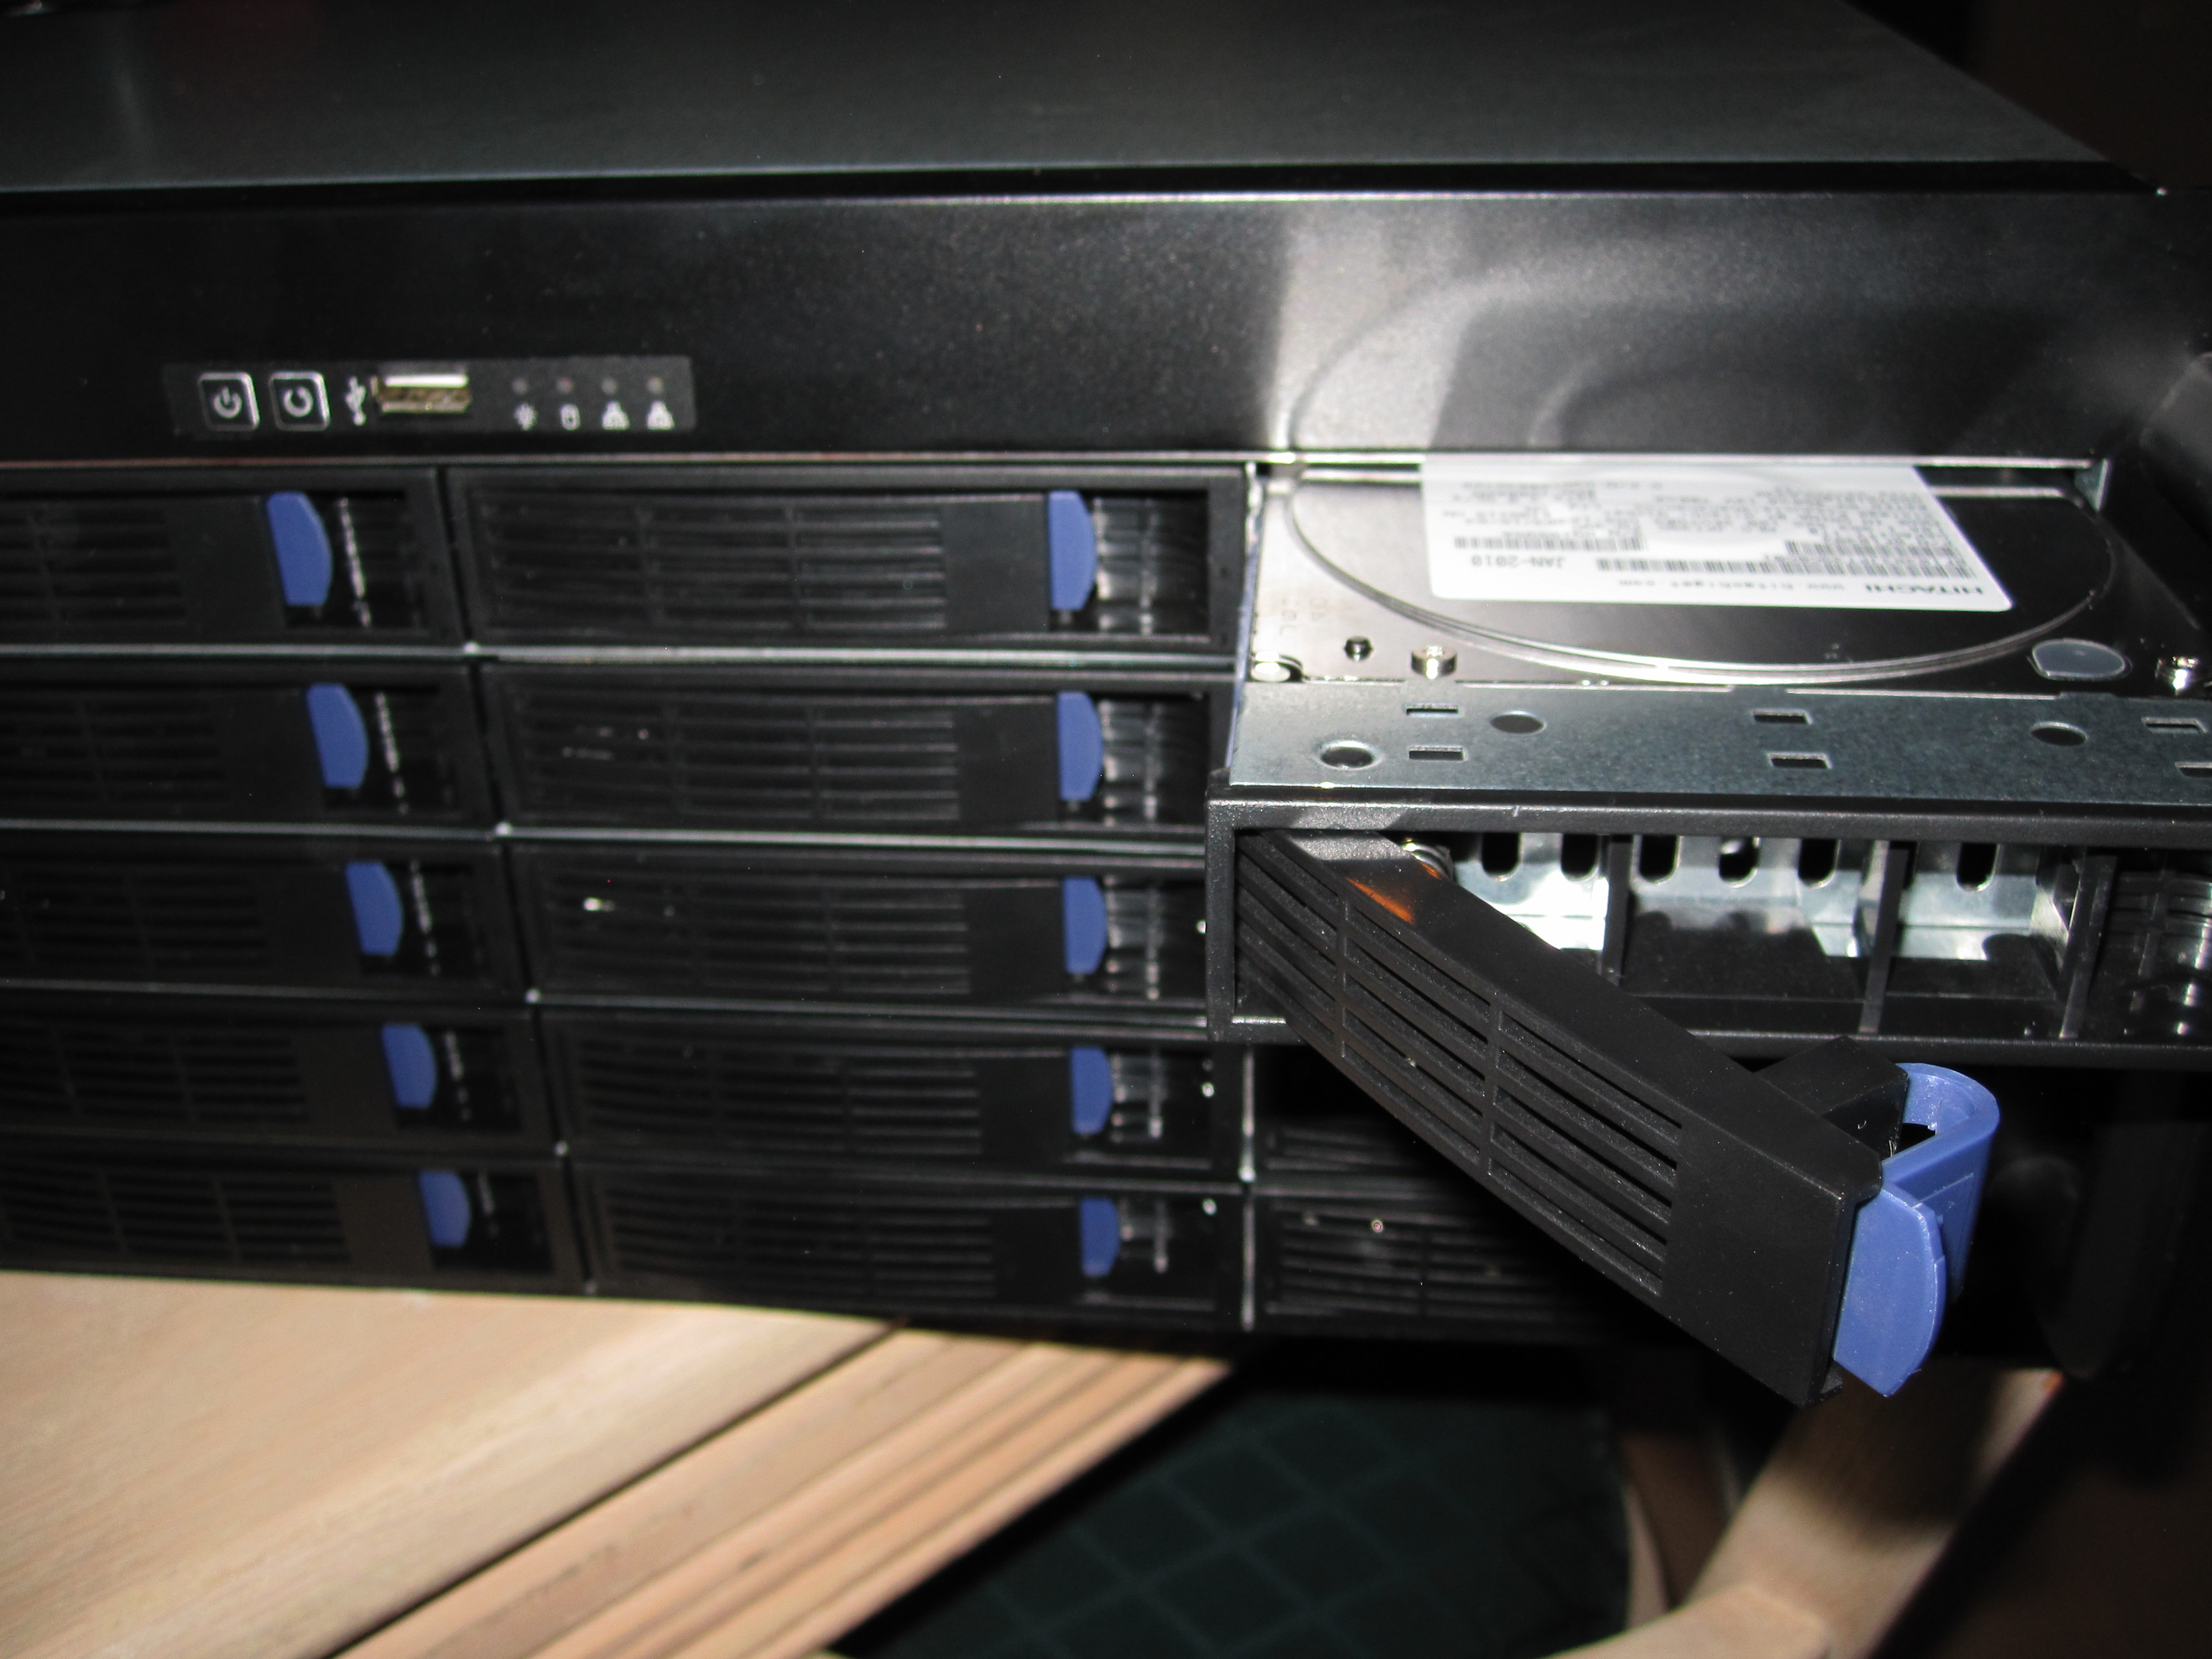 Installing disks into the Norco RPC-4220 DAS/ SAS Expander Enclosure